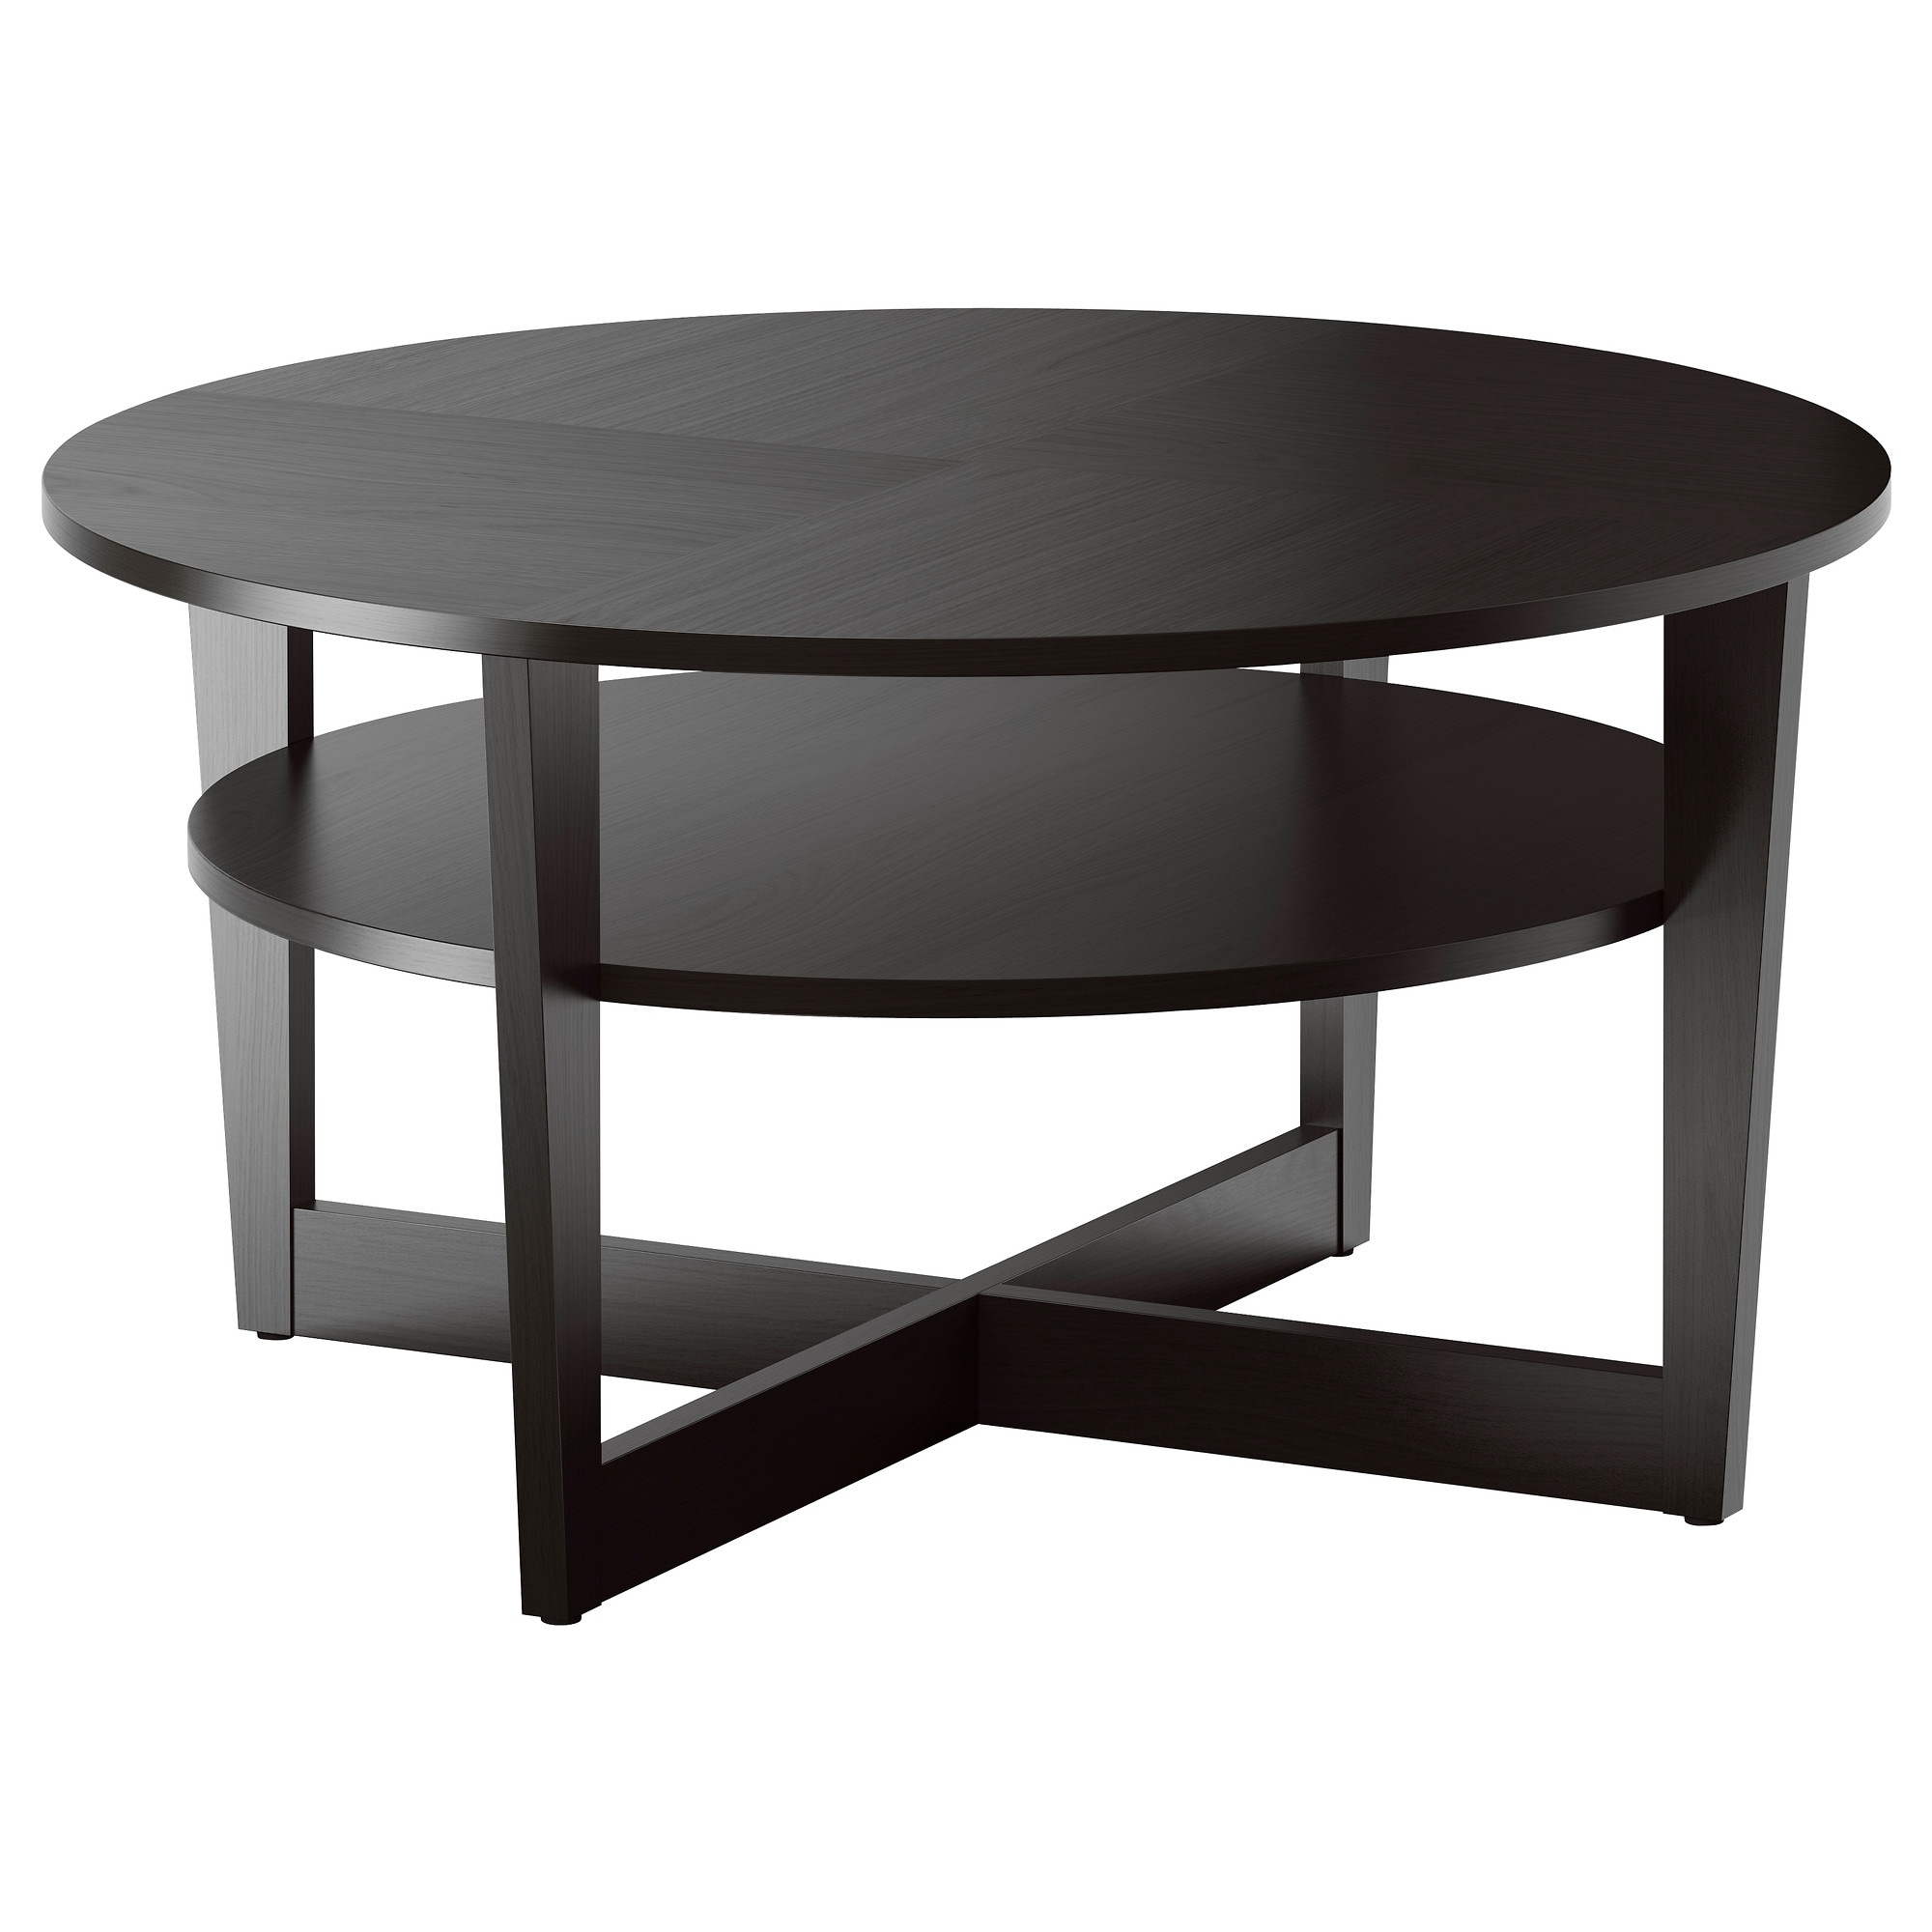 VEJMON Coffee table black brown IKEA